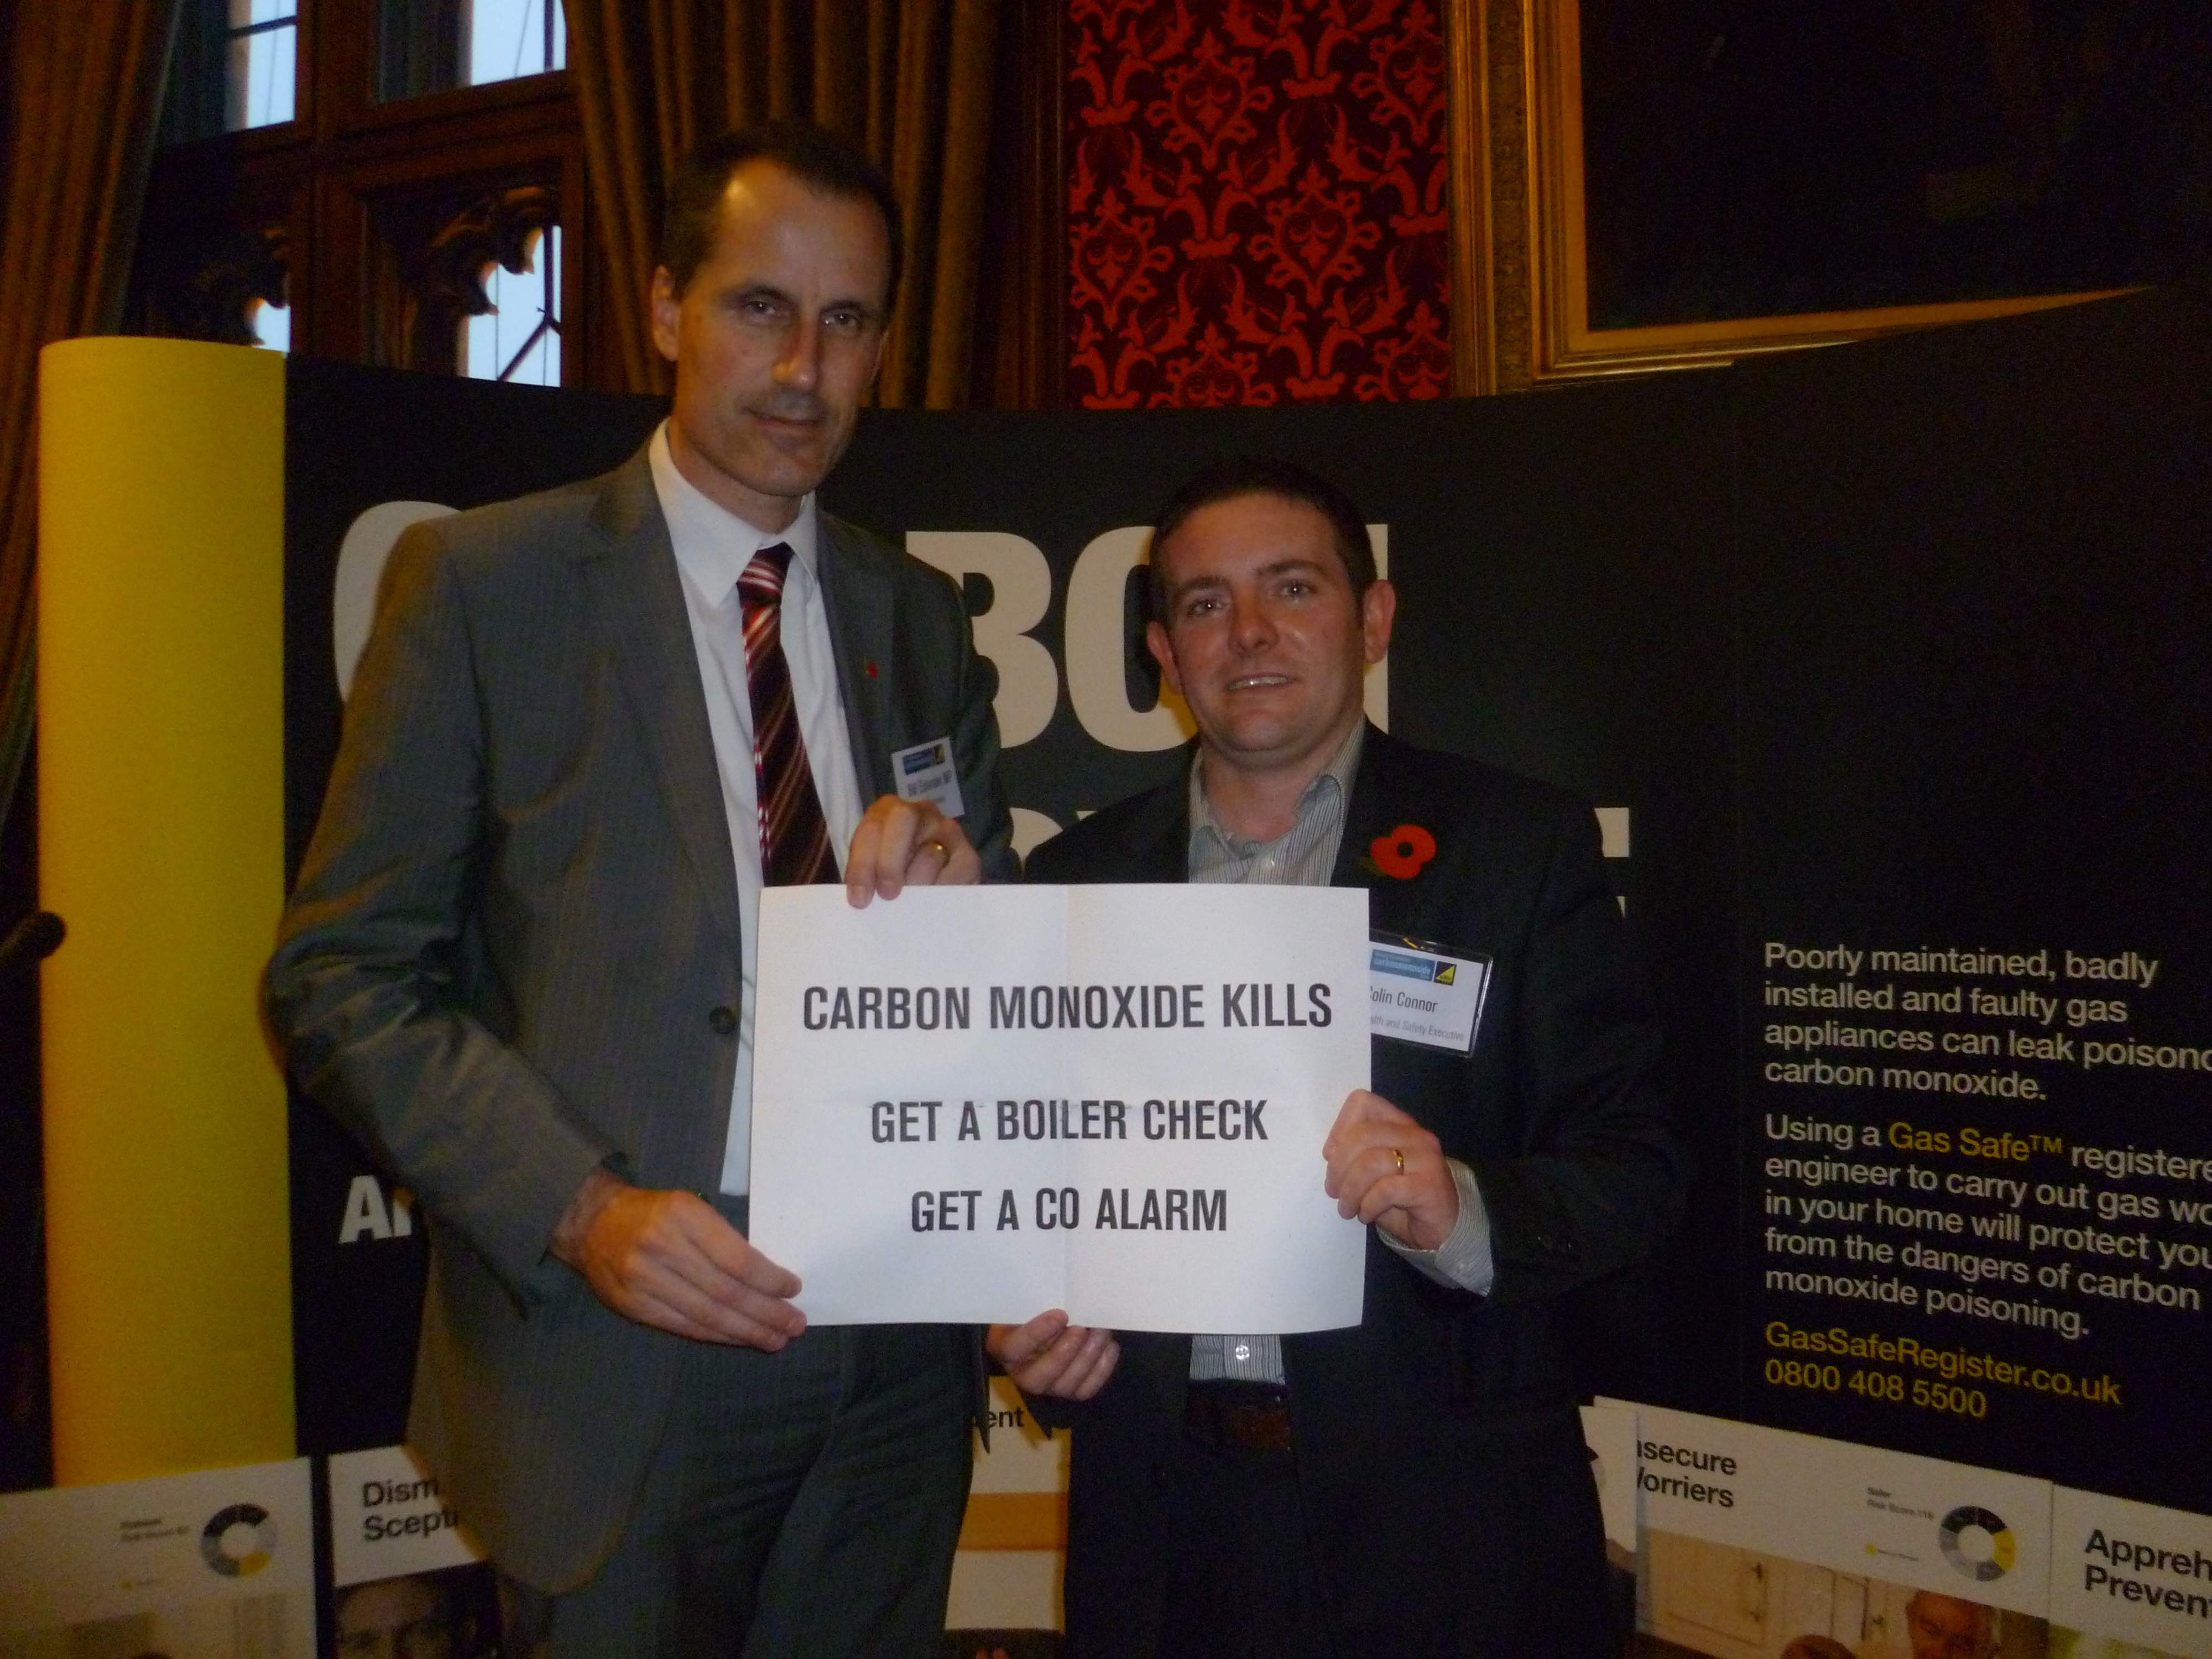 Sefton Central Labour MP Bill Esterson with Gas Safe expert Colin Connor during his visit to Parliament.